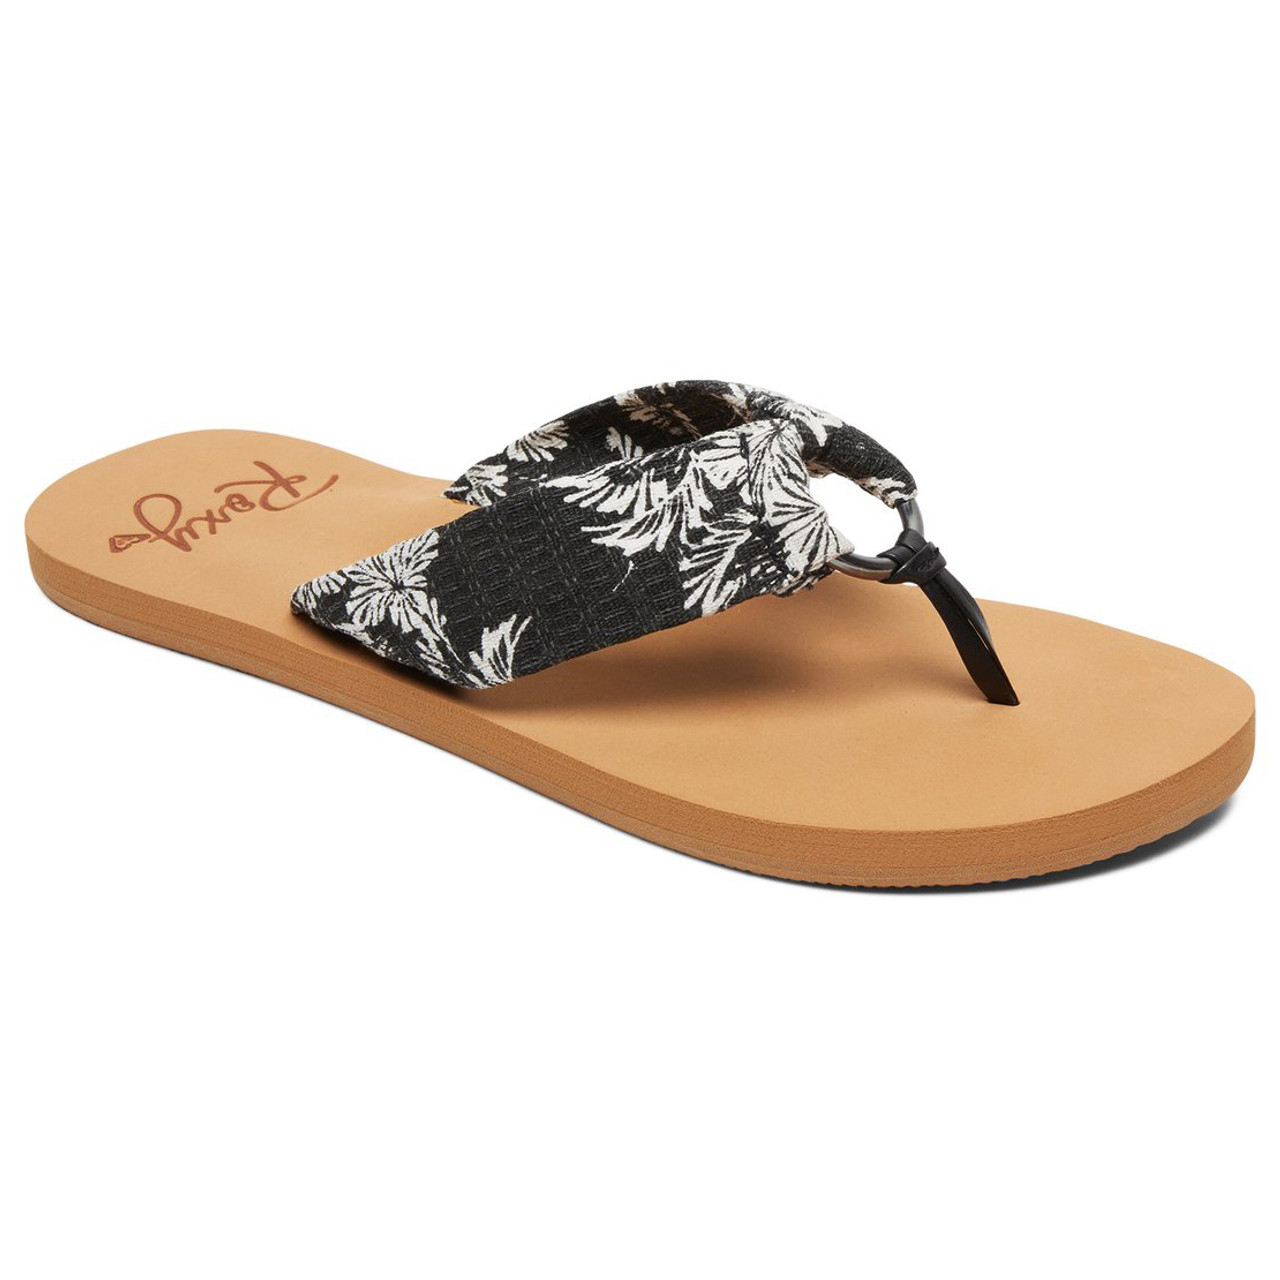 8b75ae6a34d8 Roxy Flip Flops - Paia III - Black White - Surf and Dirt